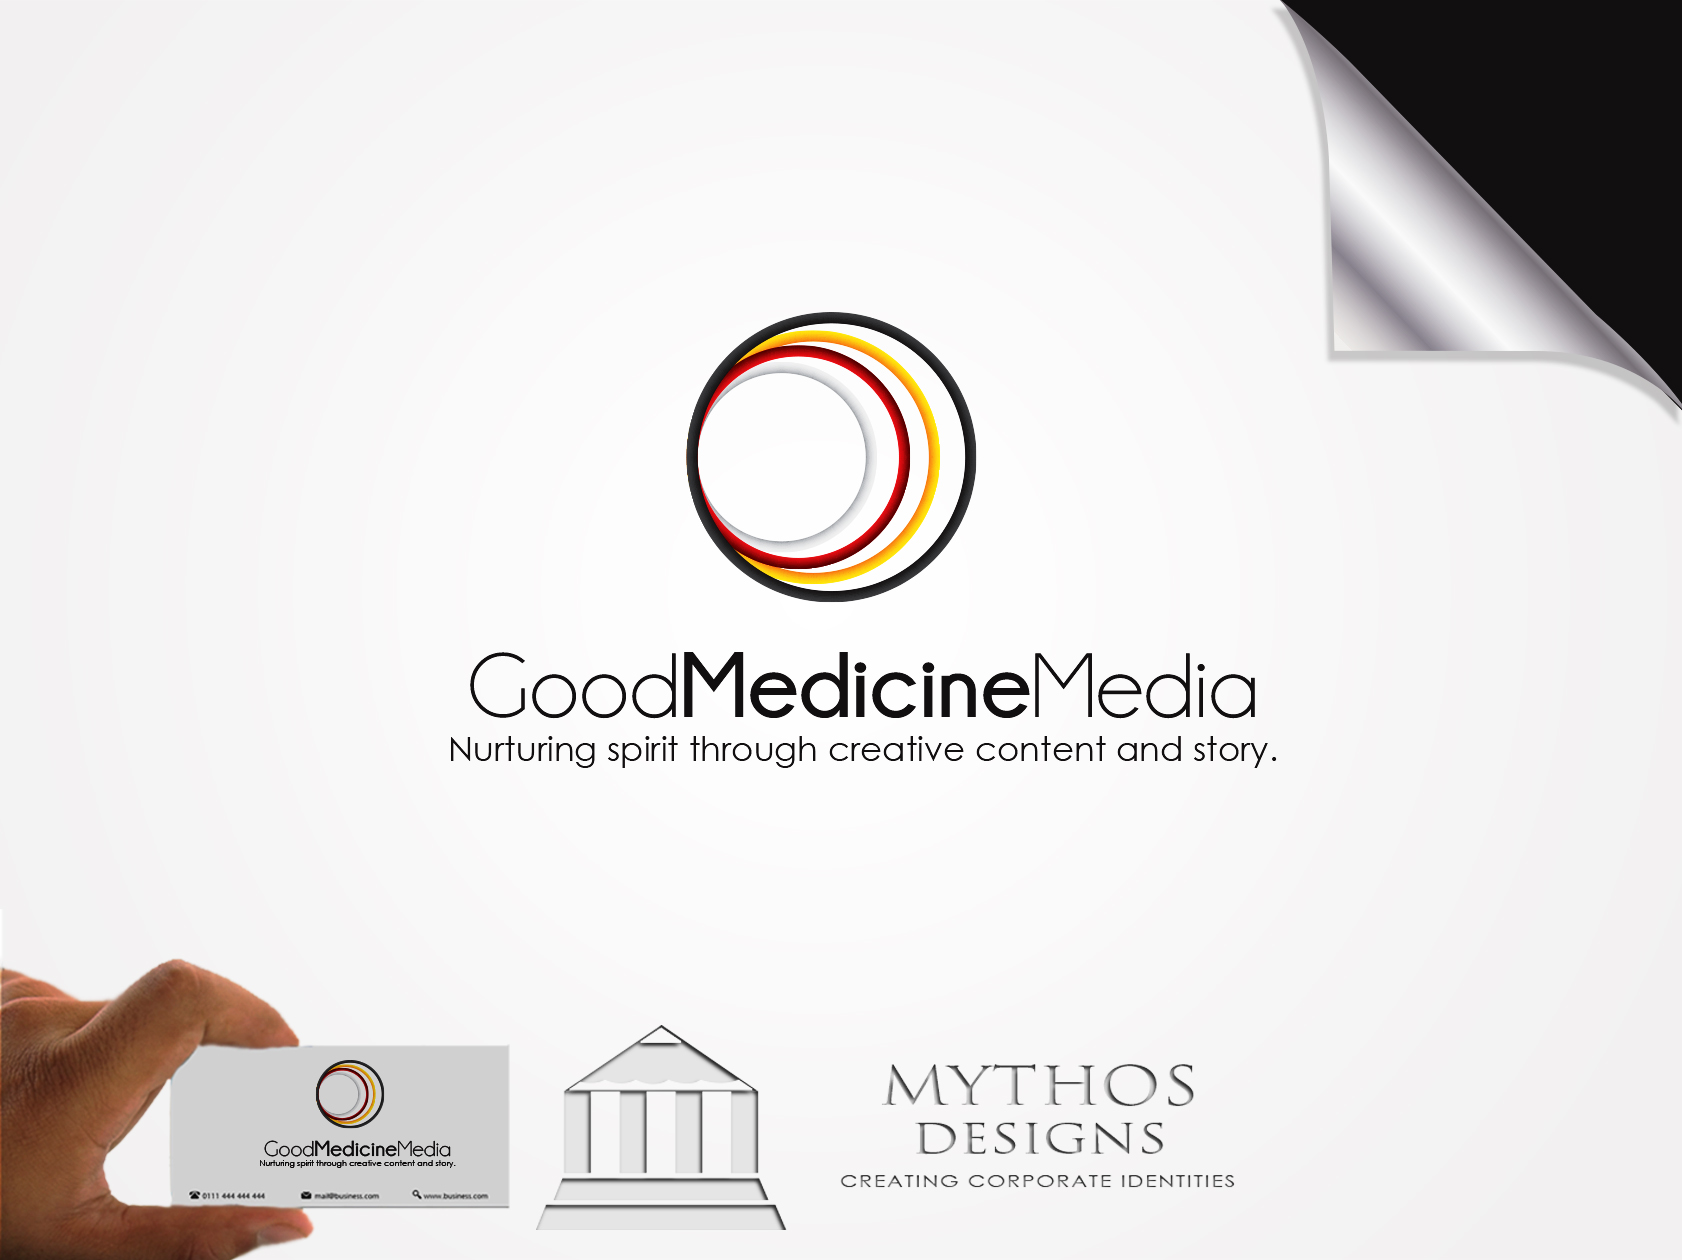 Logo Design by Mythos Designs - Entry No. 255 in the Logo Design Contest Good Medicine Media Logo Design.